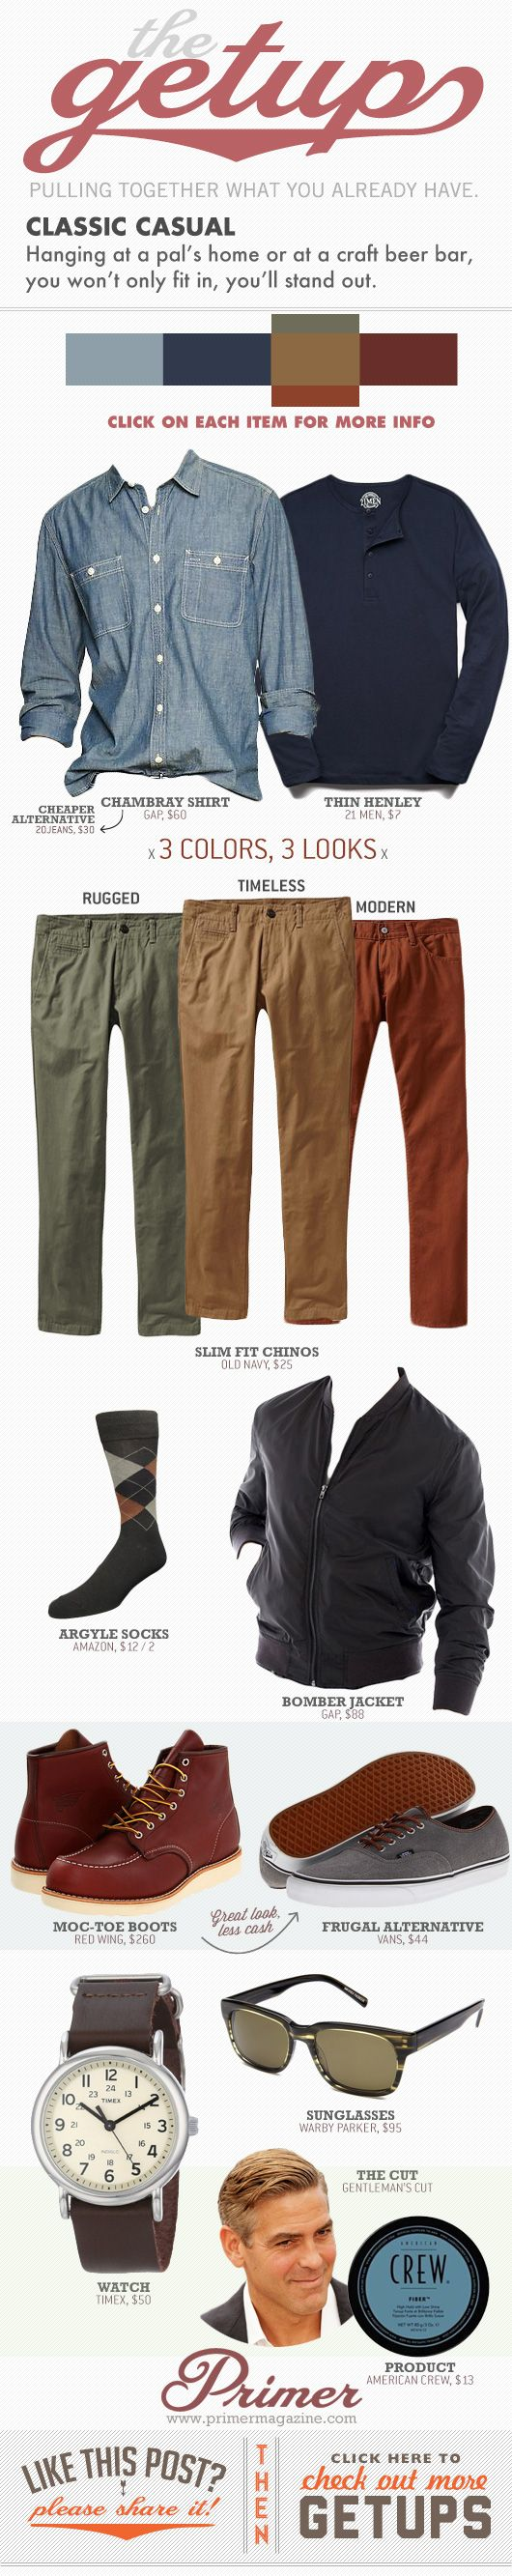 The Getup: Classic Casual - Primer